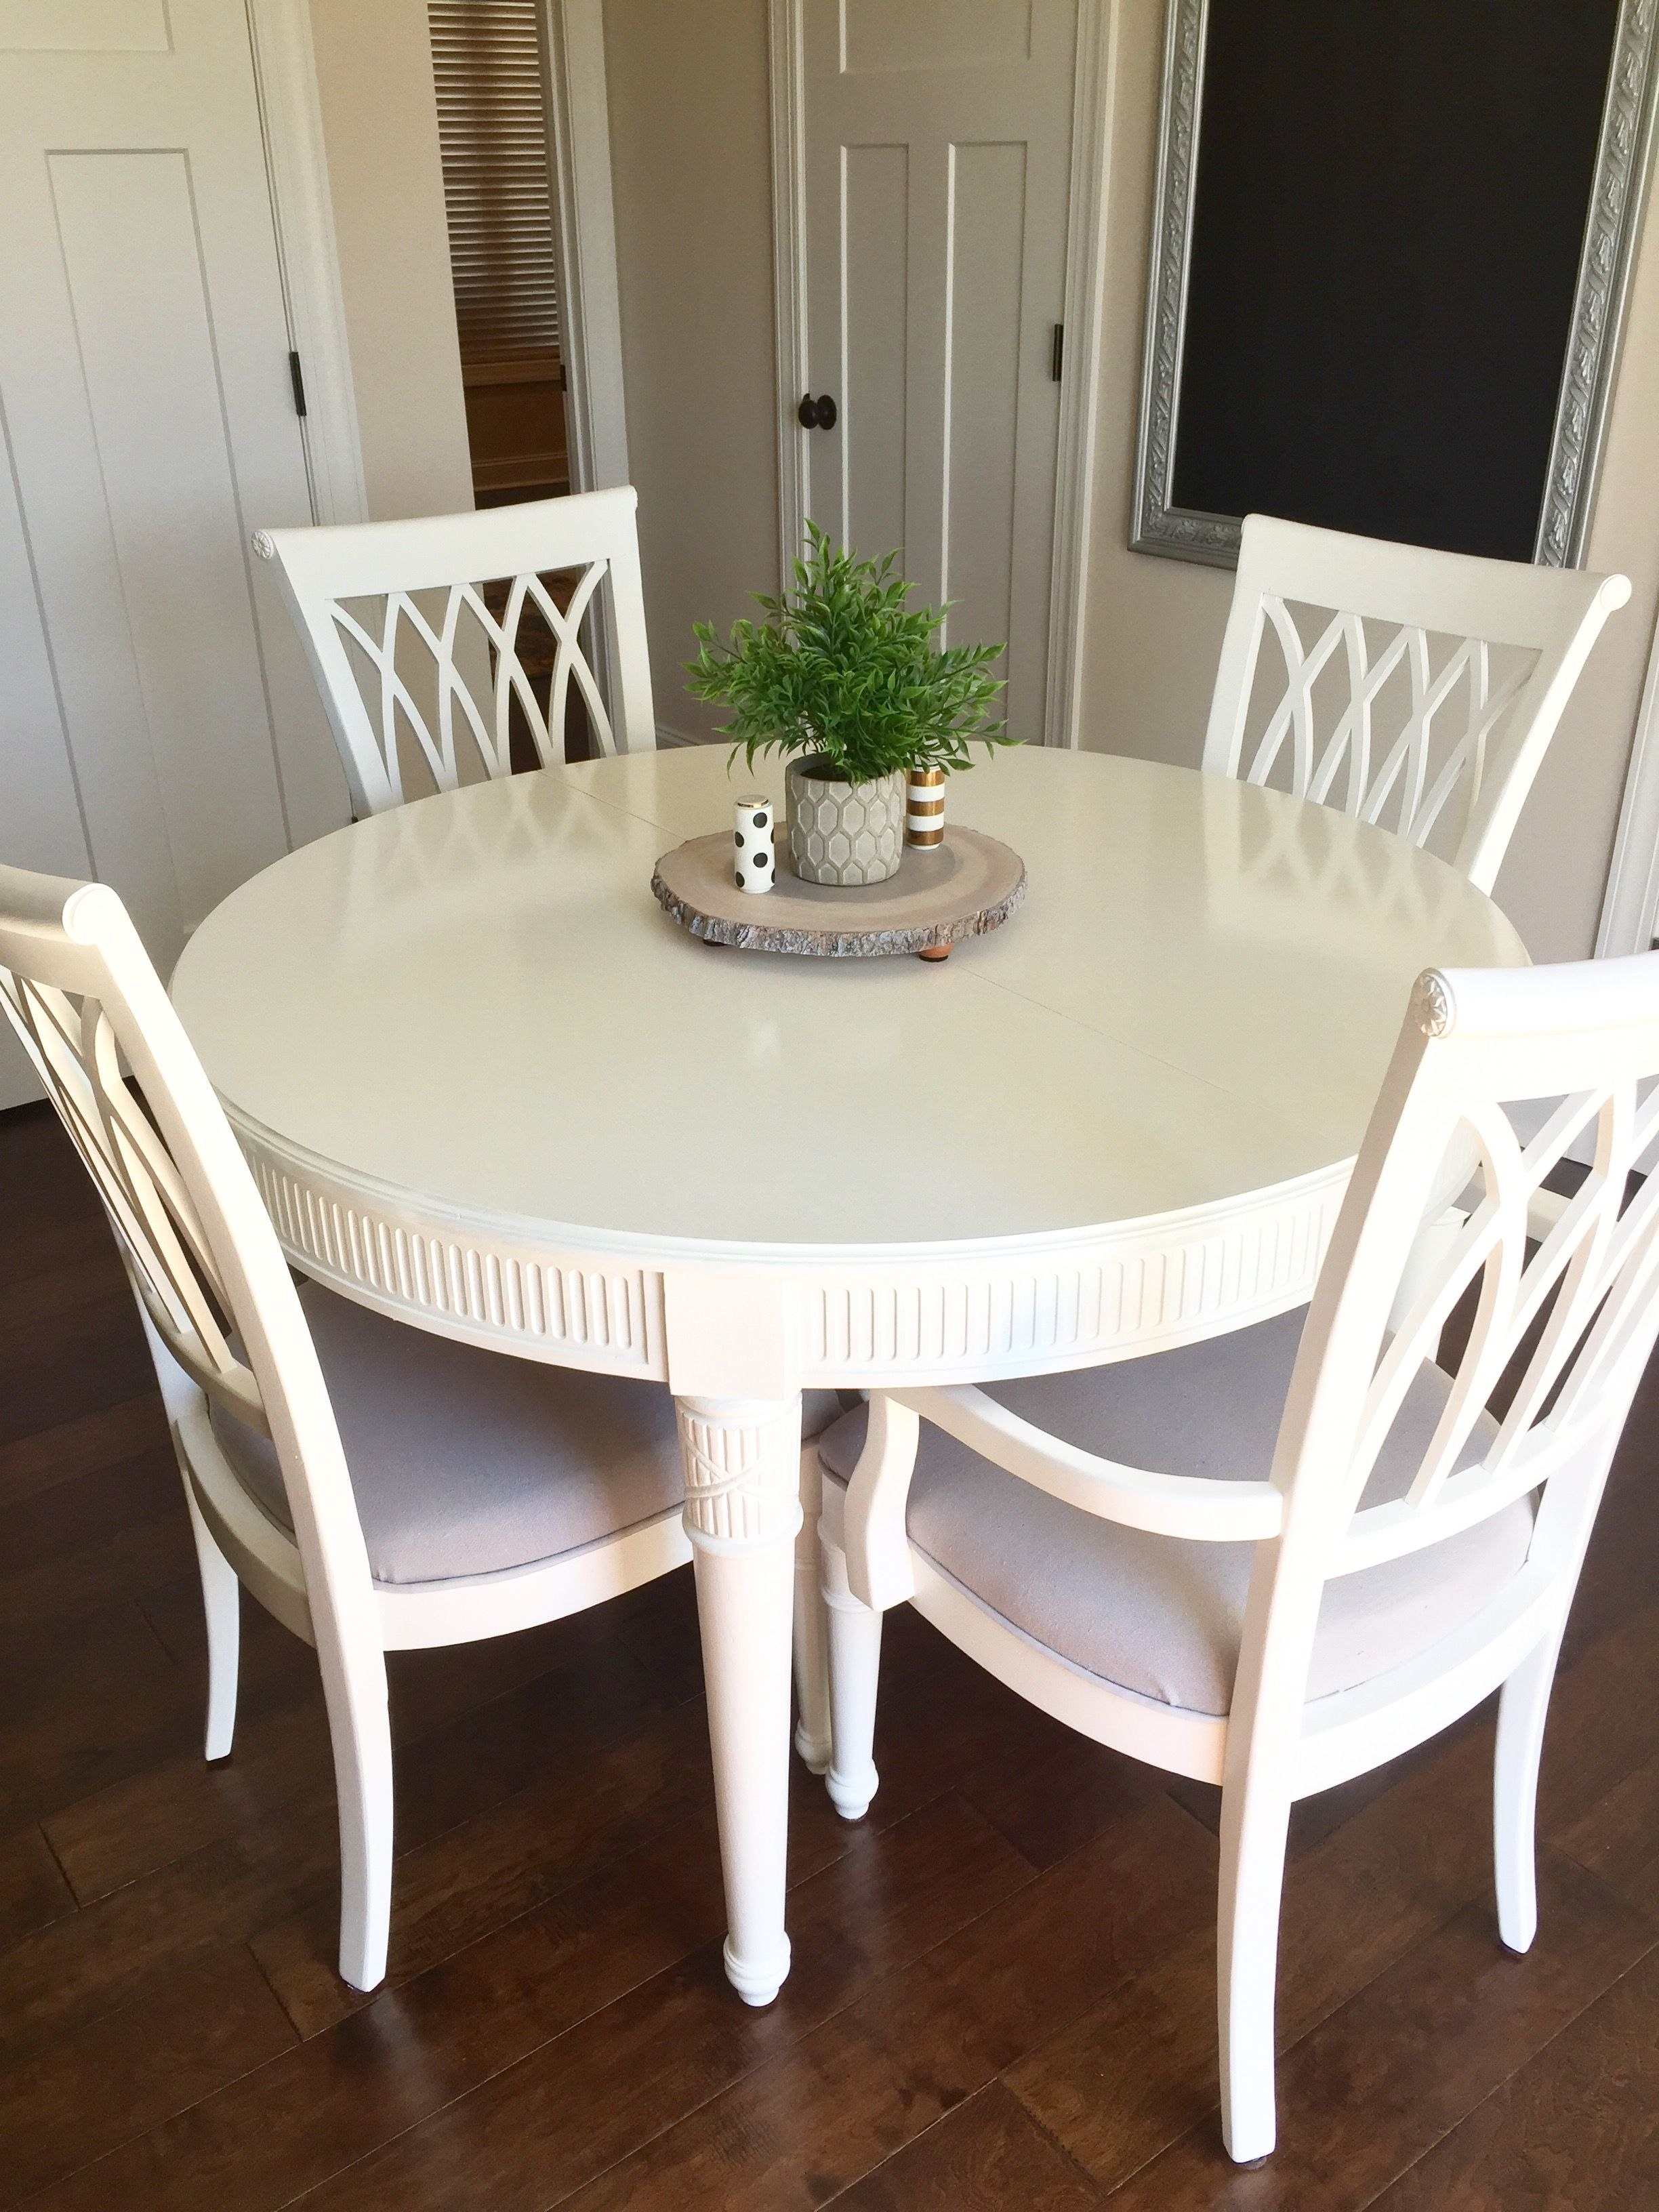 Enjoyable Repurposed Dining Table Painted Oak Table With Valspar White Beutiful Home Inspiration Xortanetmahrainfo